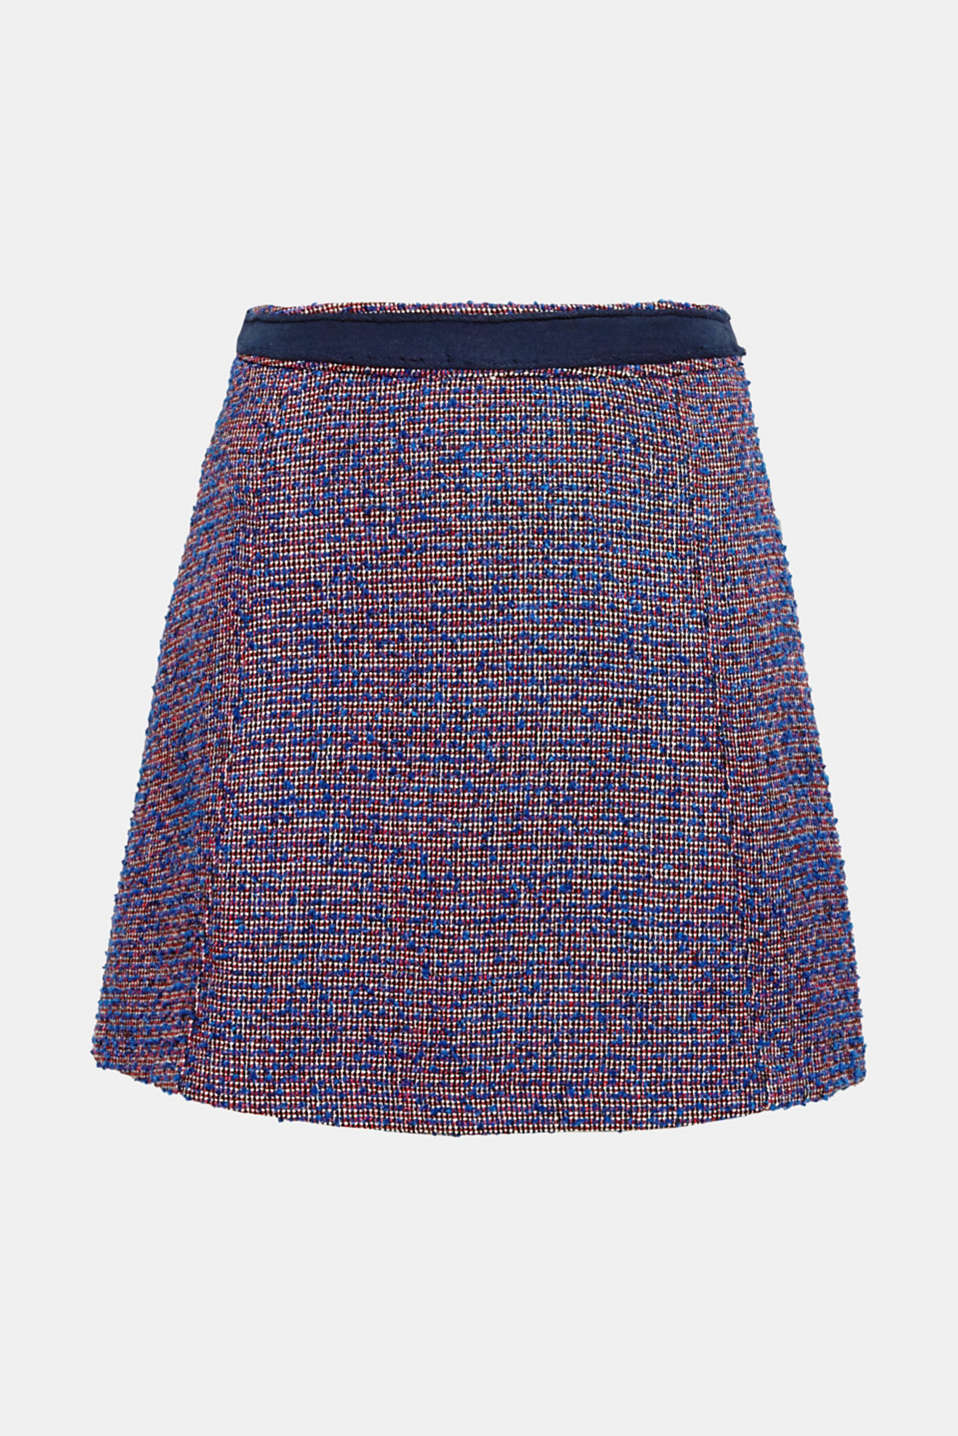 We love texture! The elegant bouclé fabric makes this mini skirt a fashionable eye-catching piece with its knotted look.